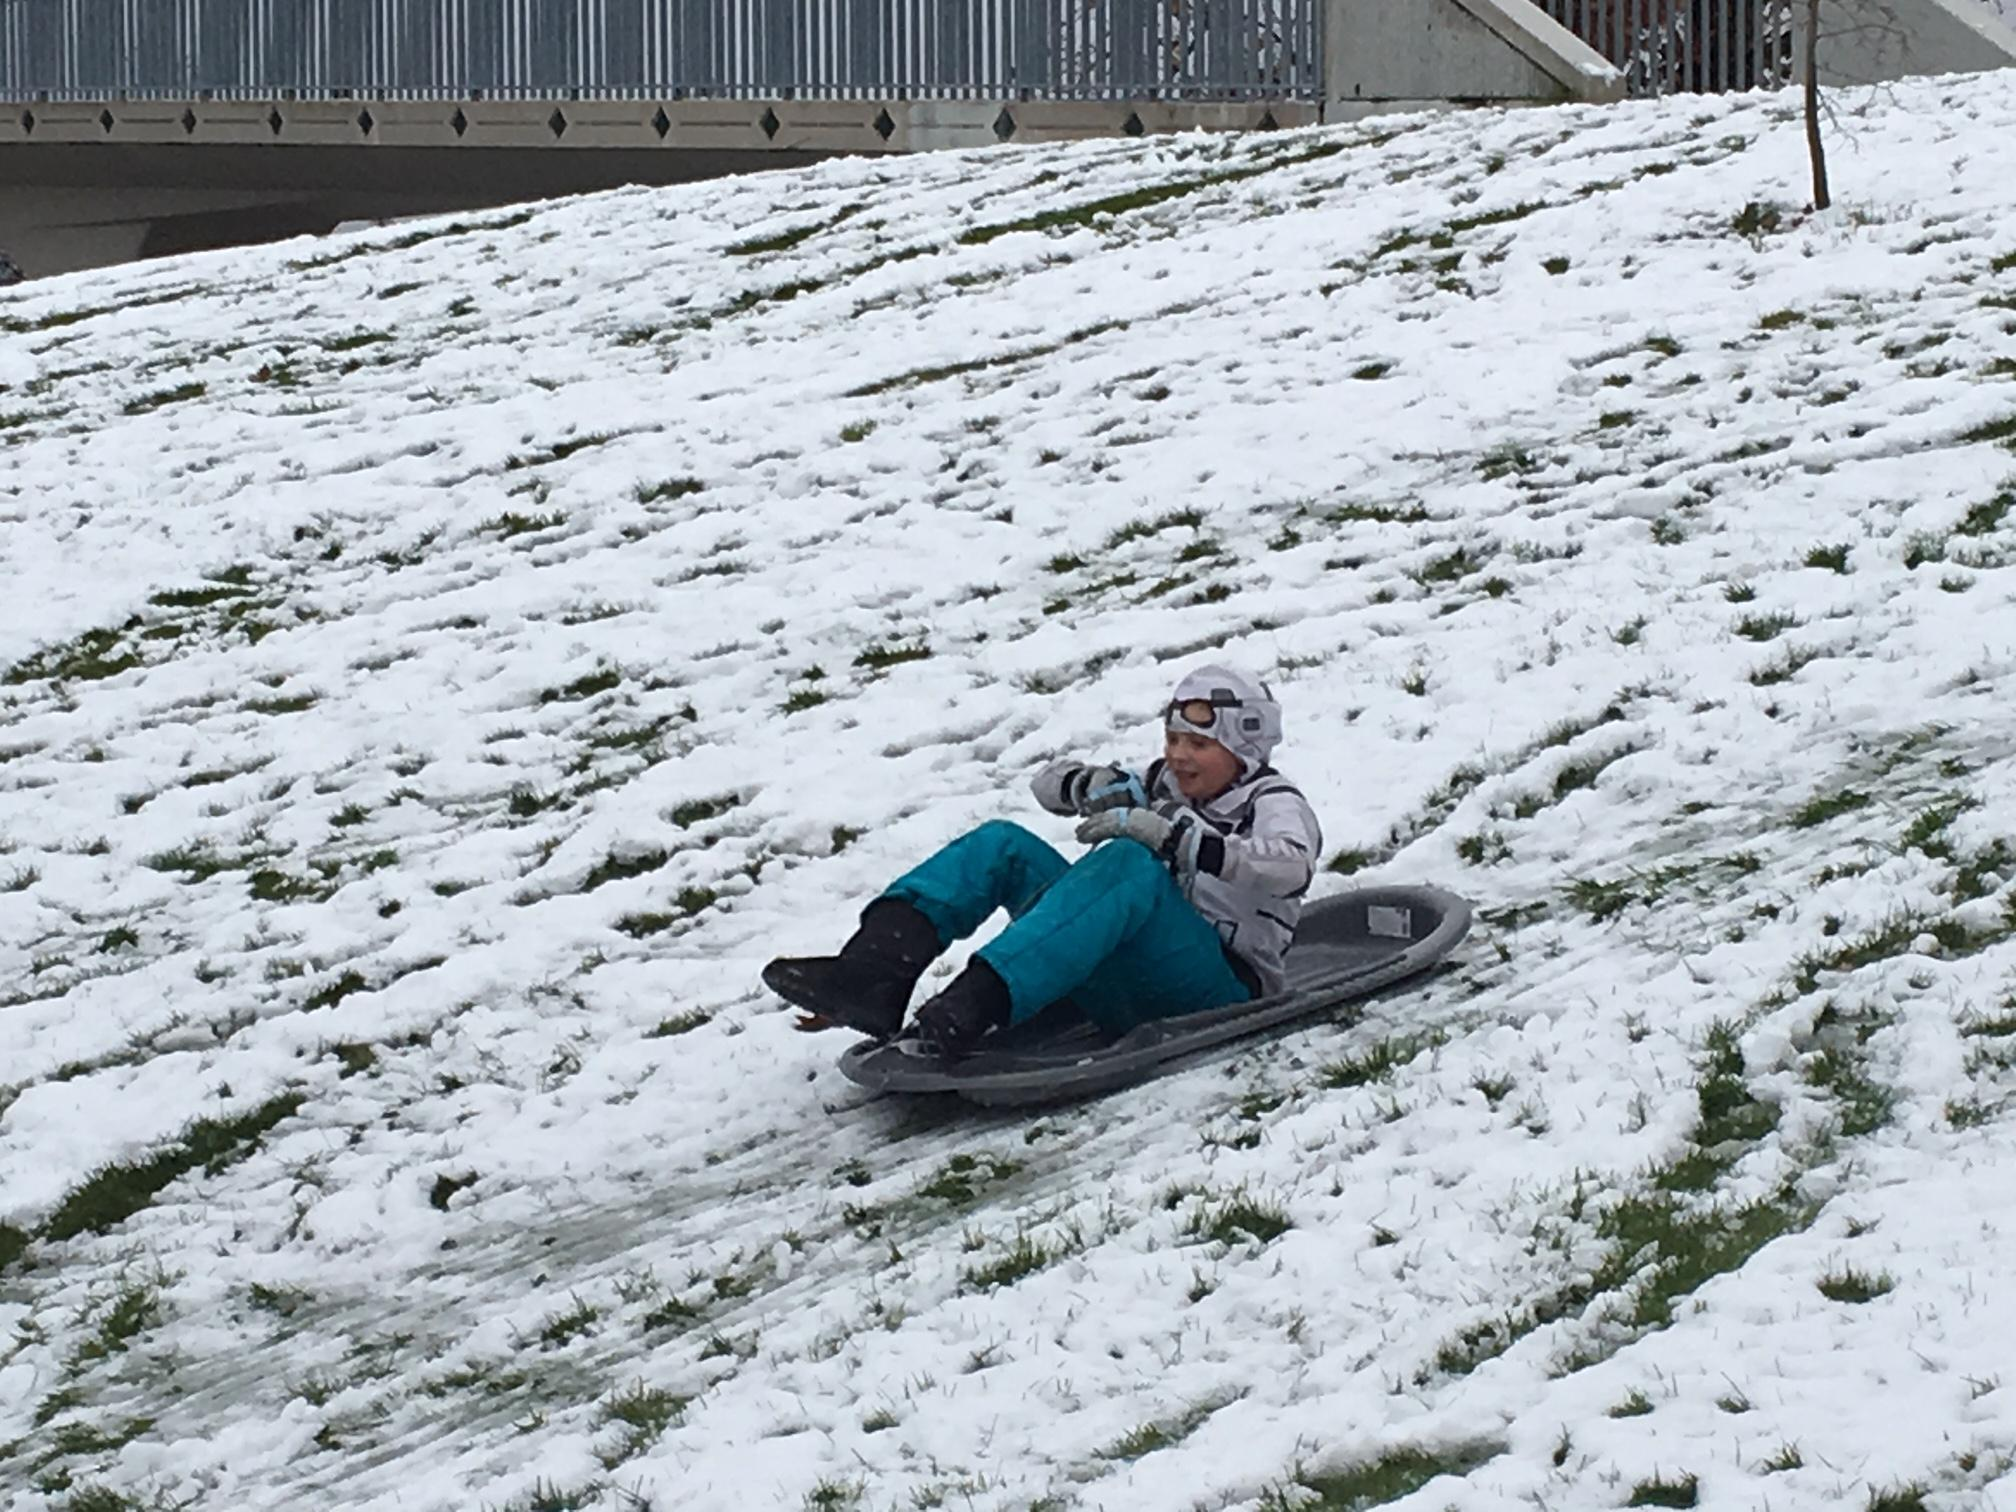 Did you go sledding? Share your videos & photos #LiveOnKVAL at BURST.com/KVAL